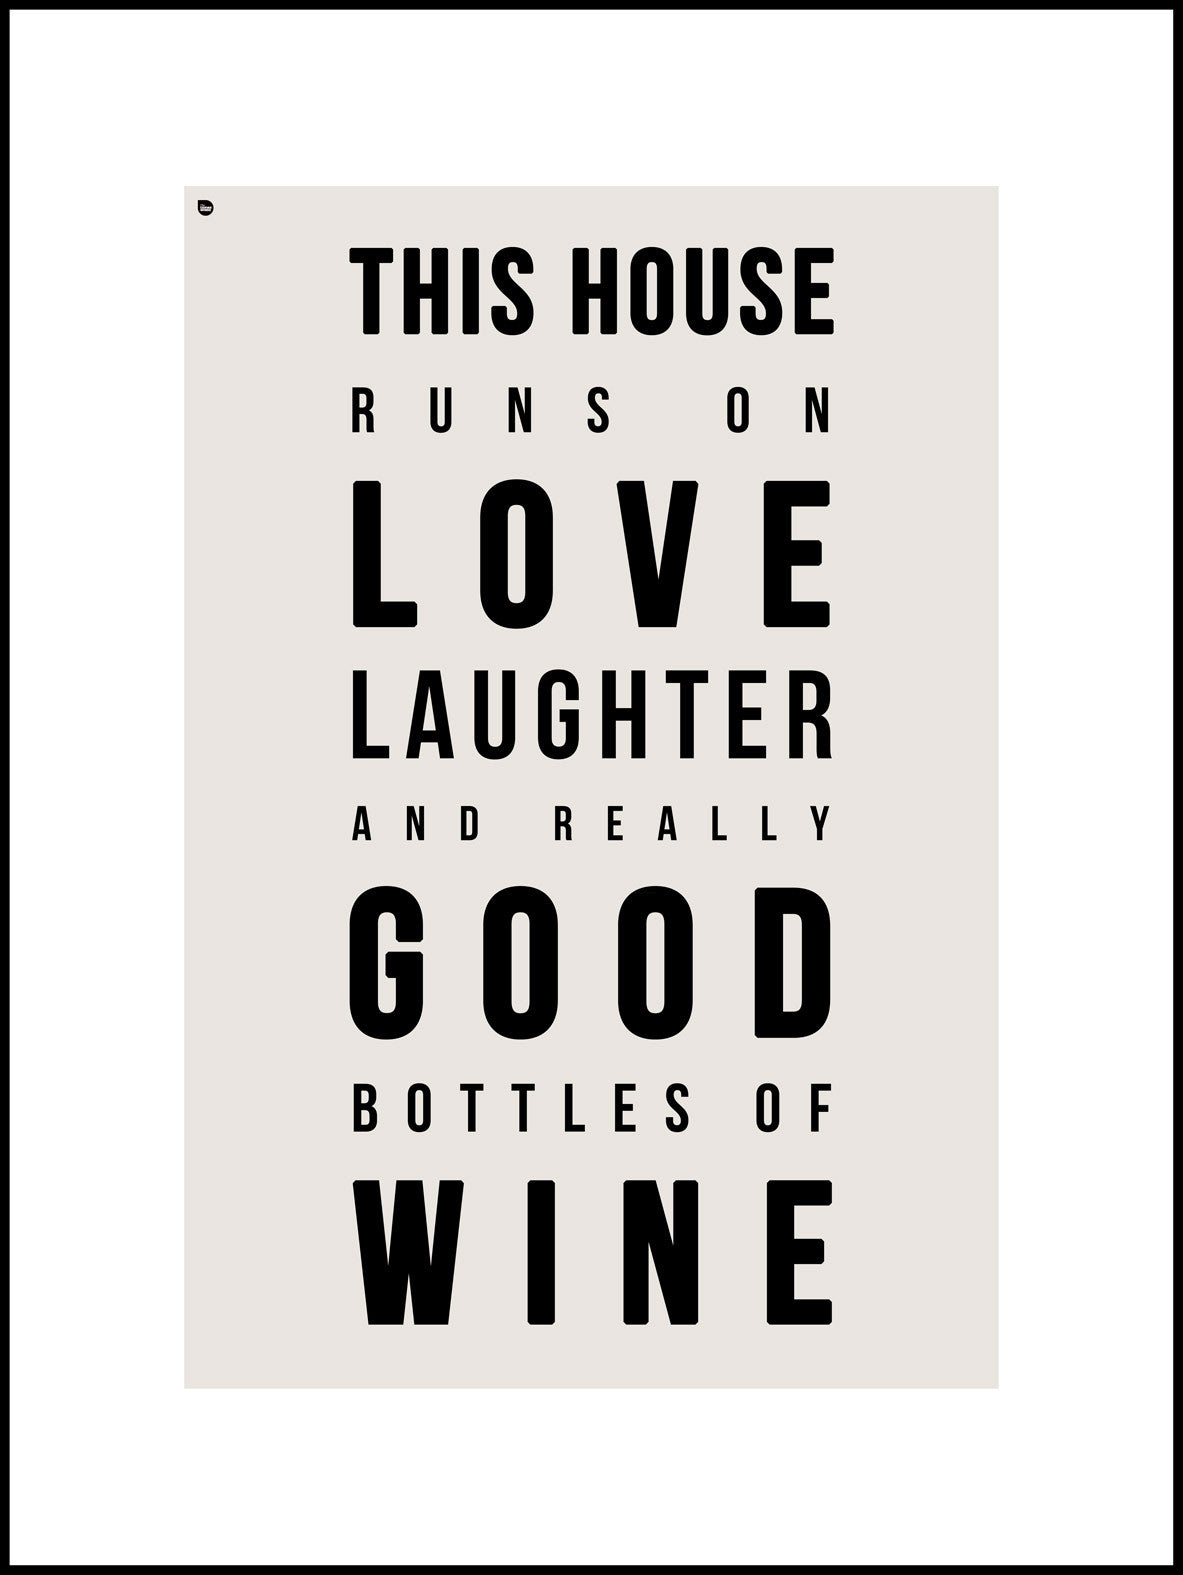 This House Runs on Love Laughter & Wine The Canvas Works